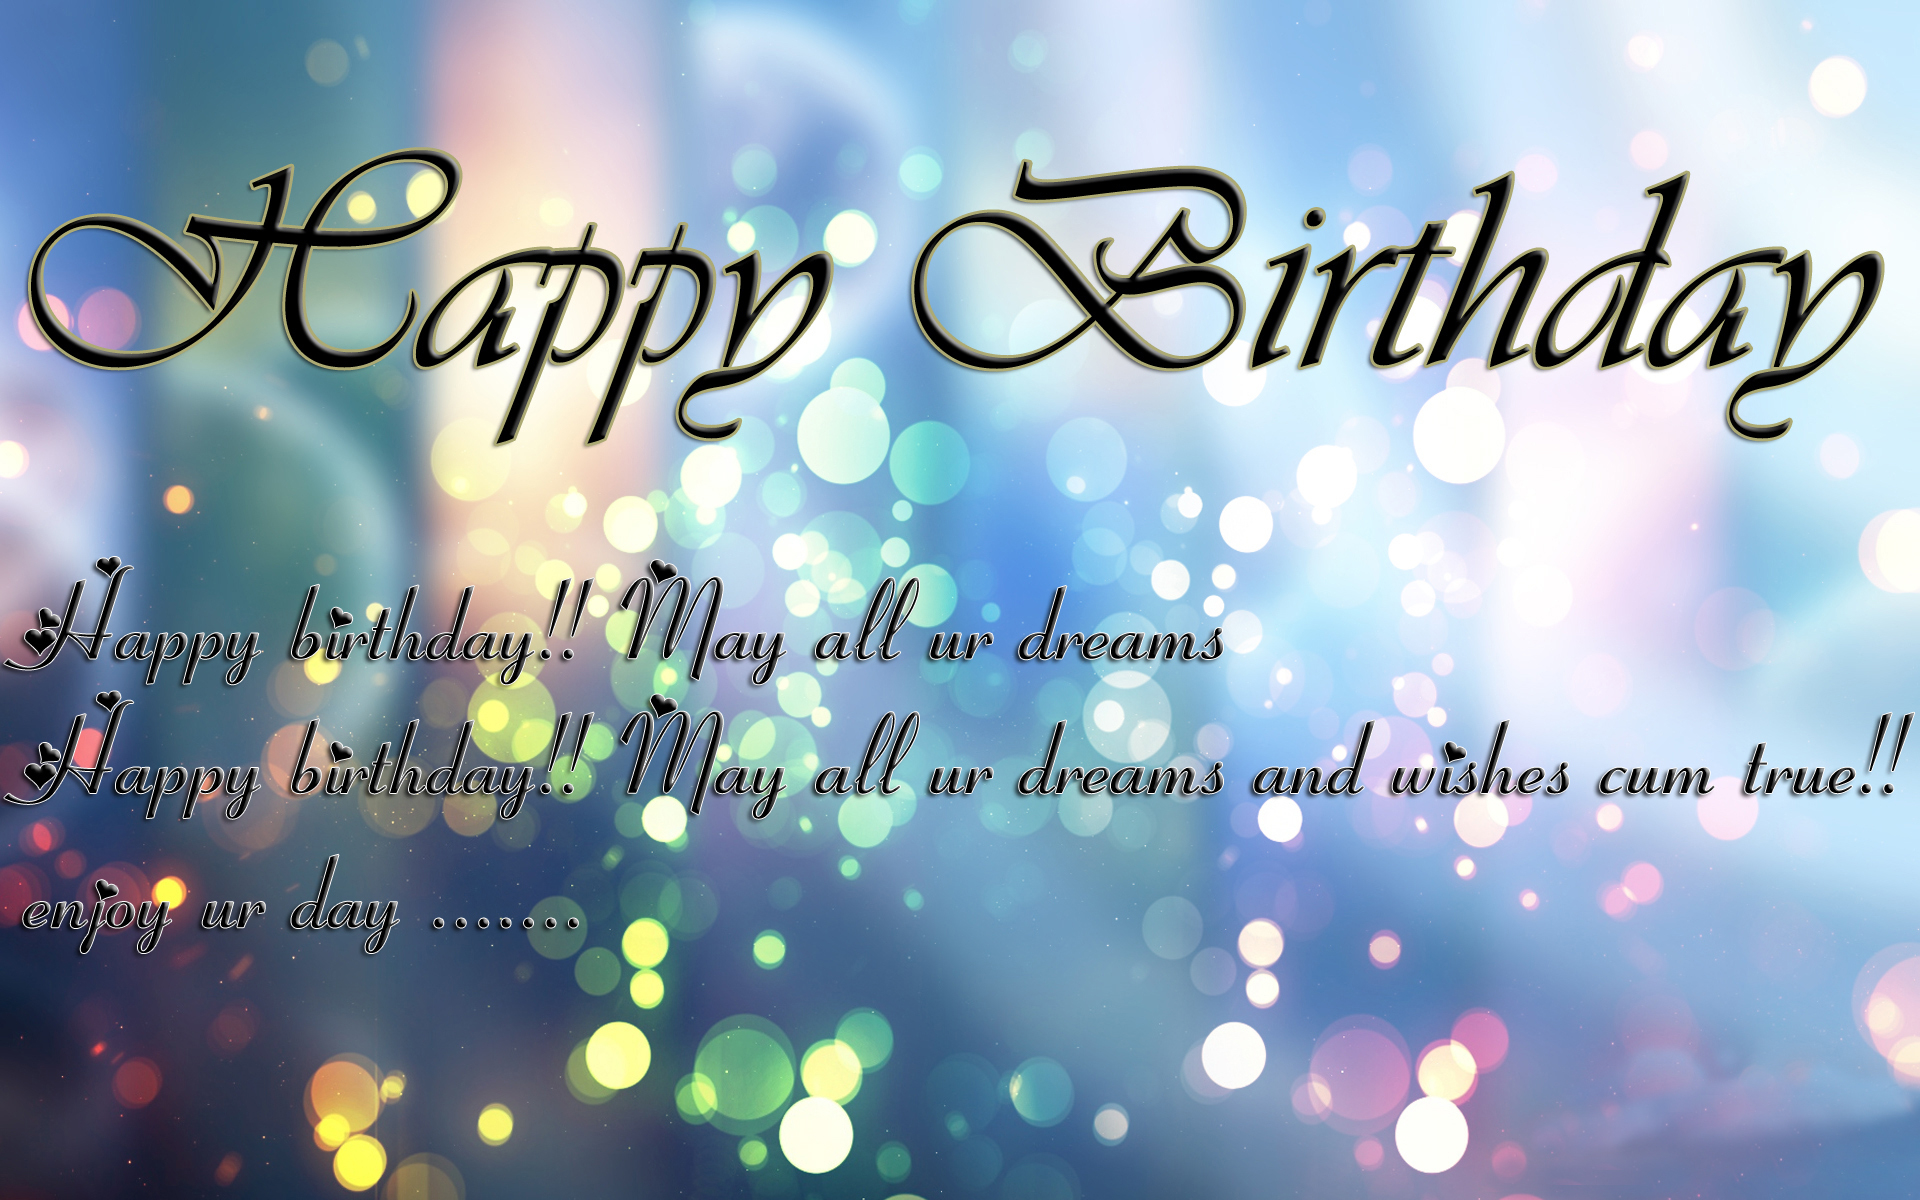 free happy birthday picture text messages ; top-100-happy-birthday-sms-wishes-quotes-text-messages-flawless-happy-birthday-wishes-text